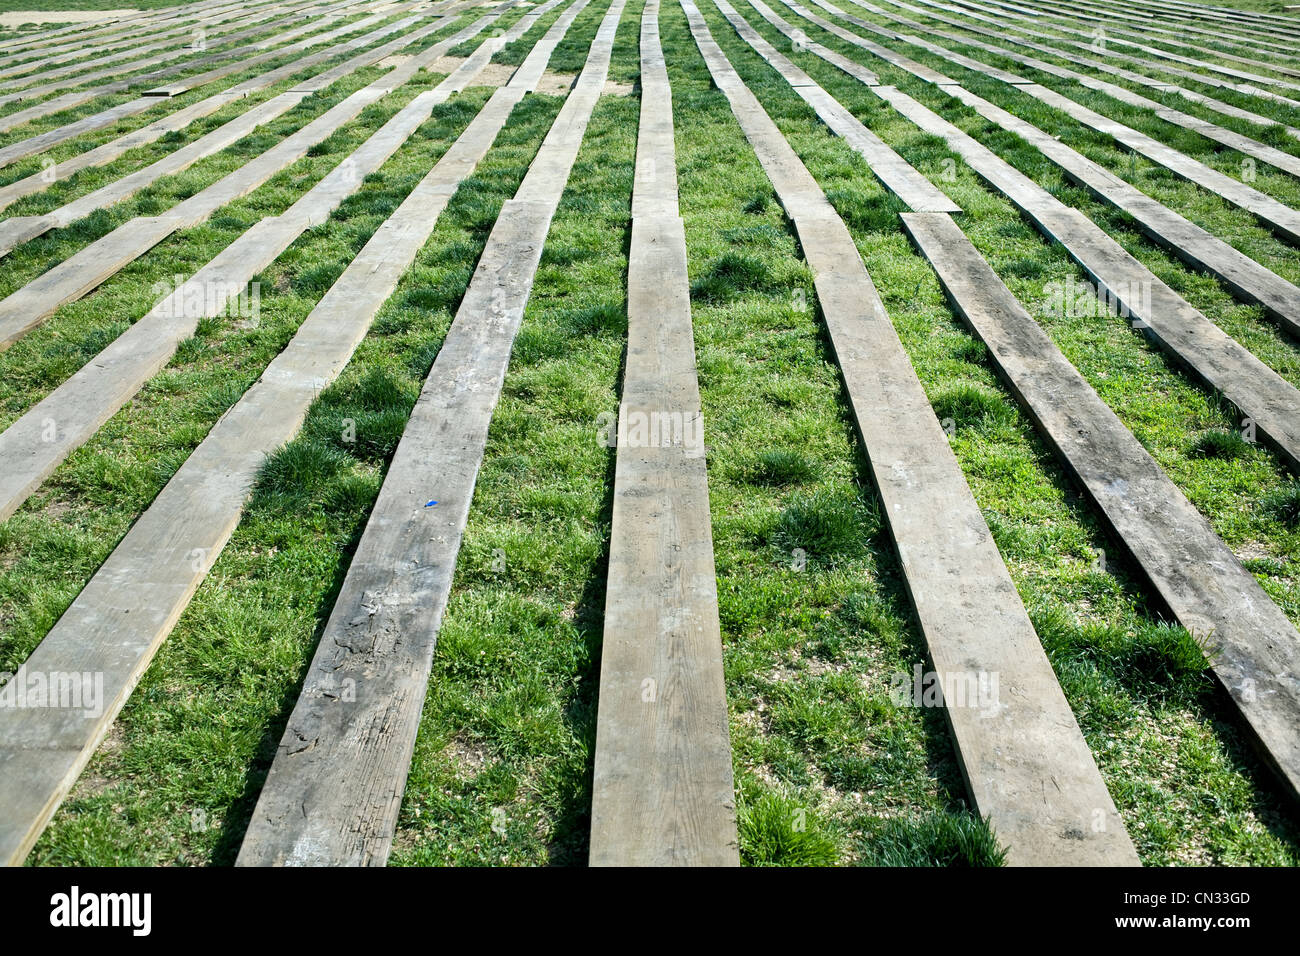 Wooden planks on grass - Stock Image